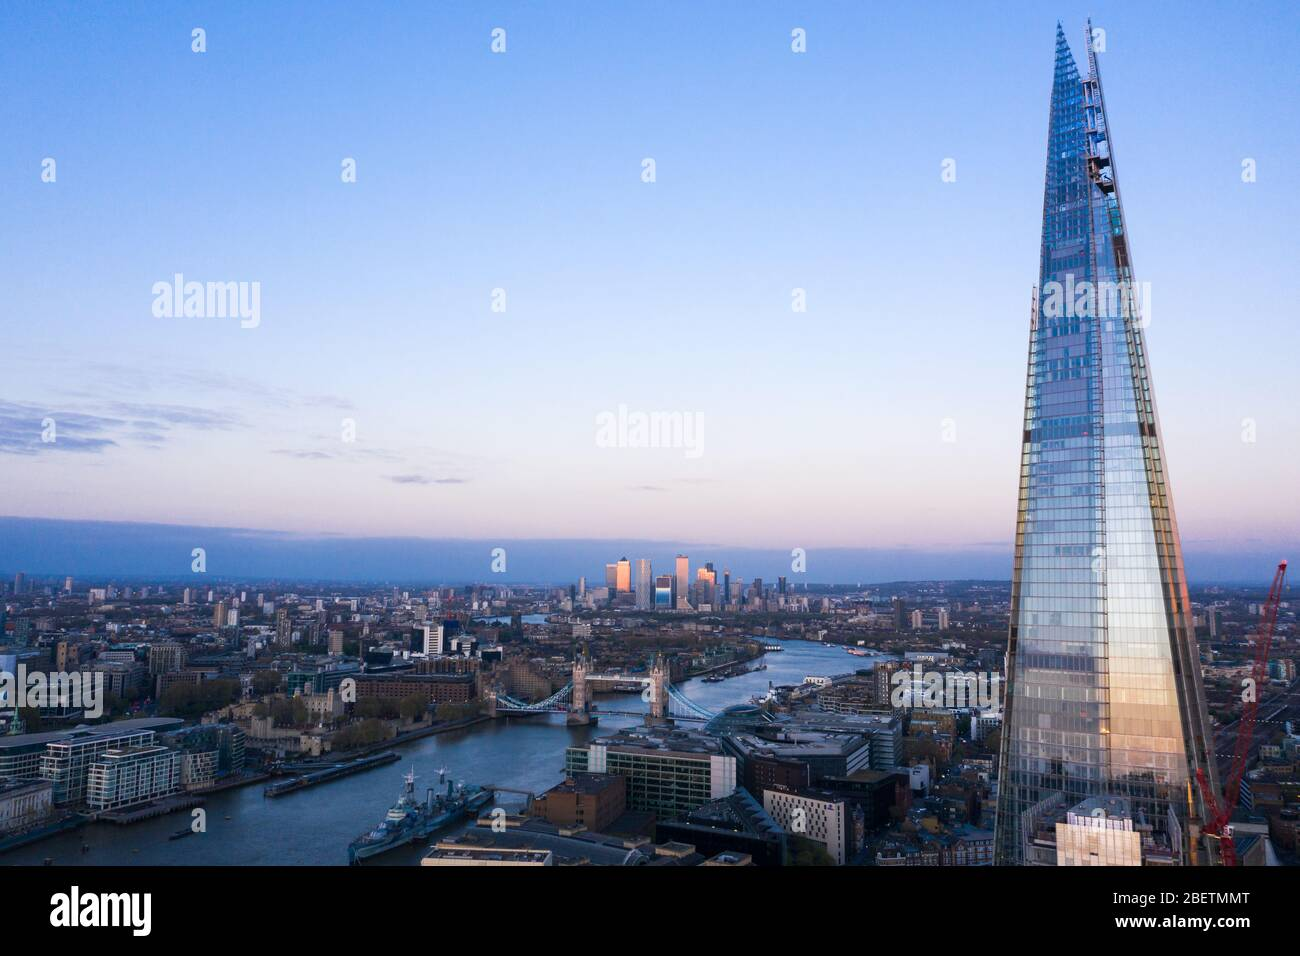 London Shard Aerial view of Town house and London Bridge Stock Photo